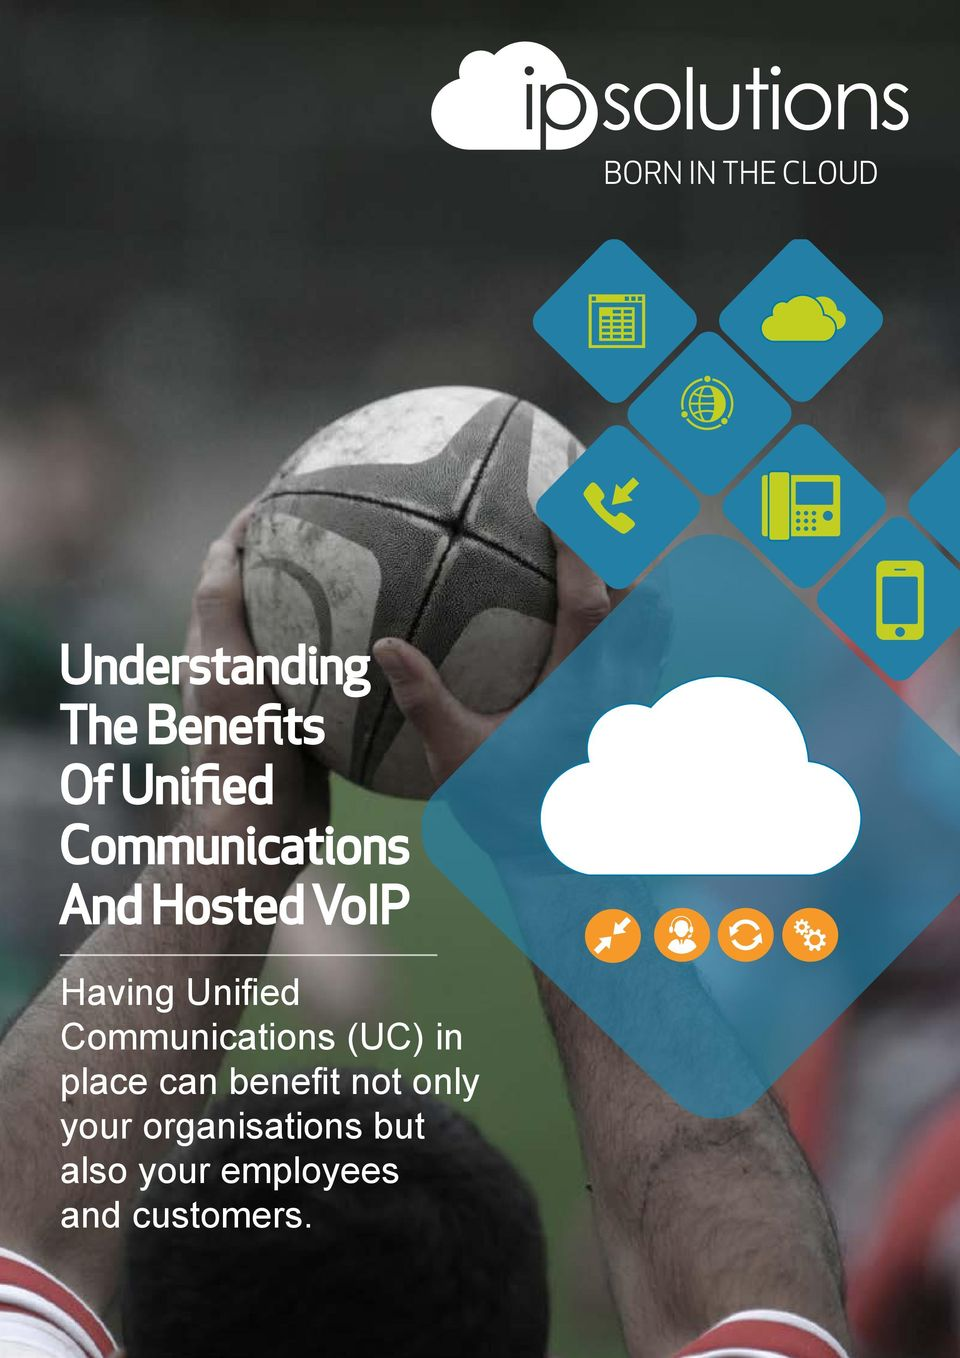 Unified Communications (UC) in place can benefit